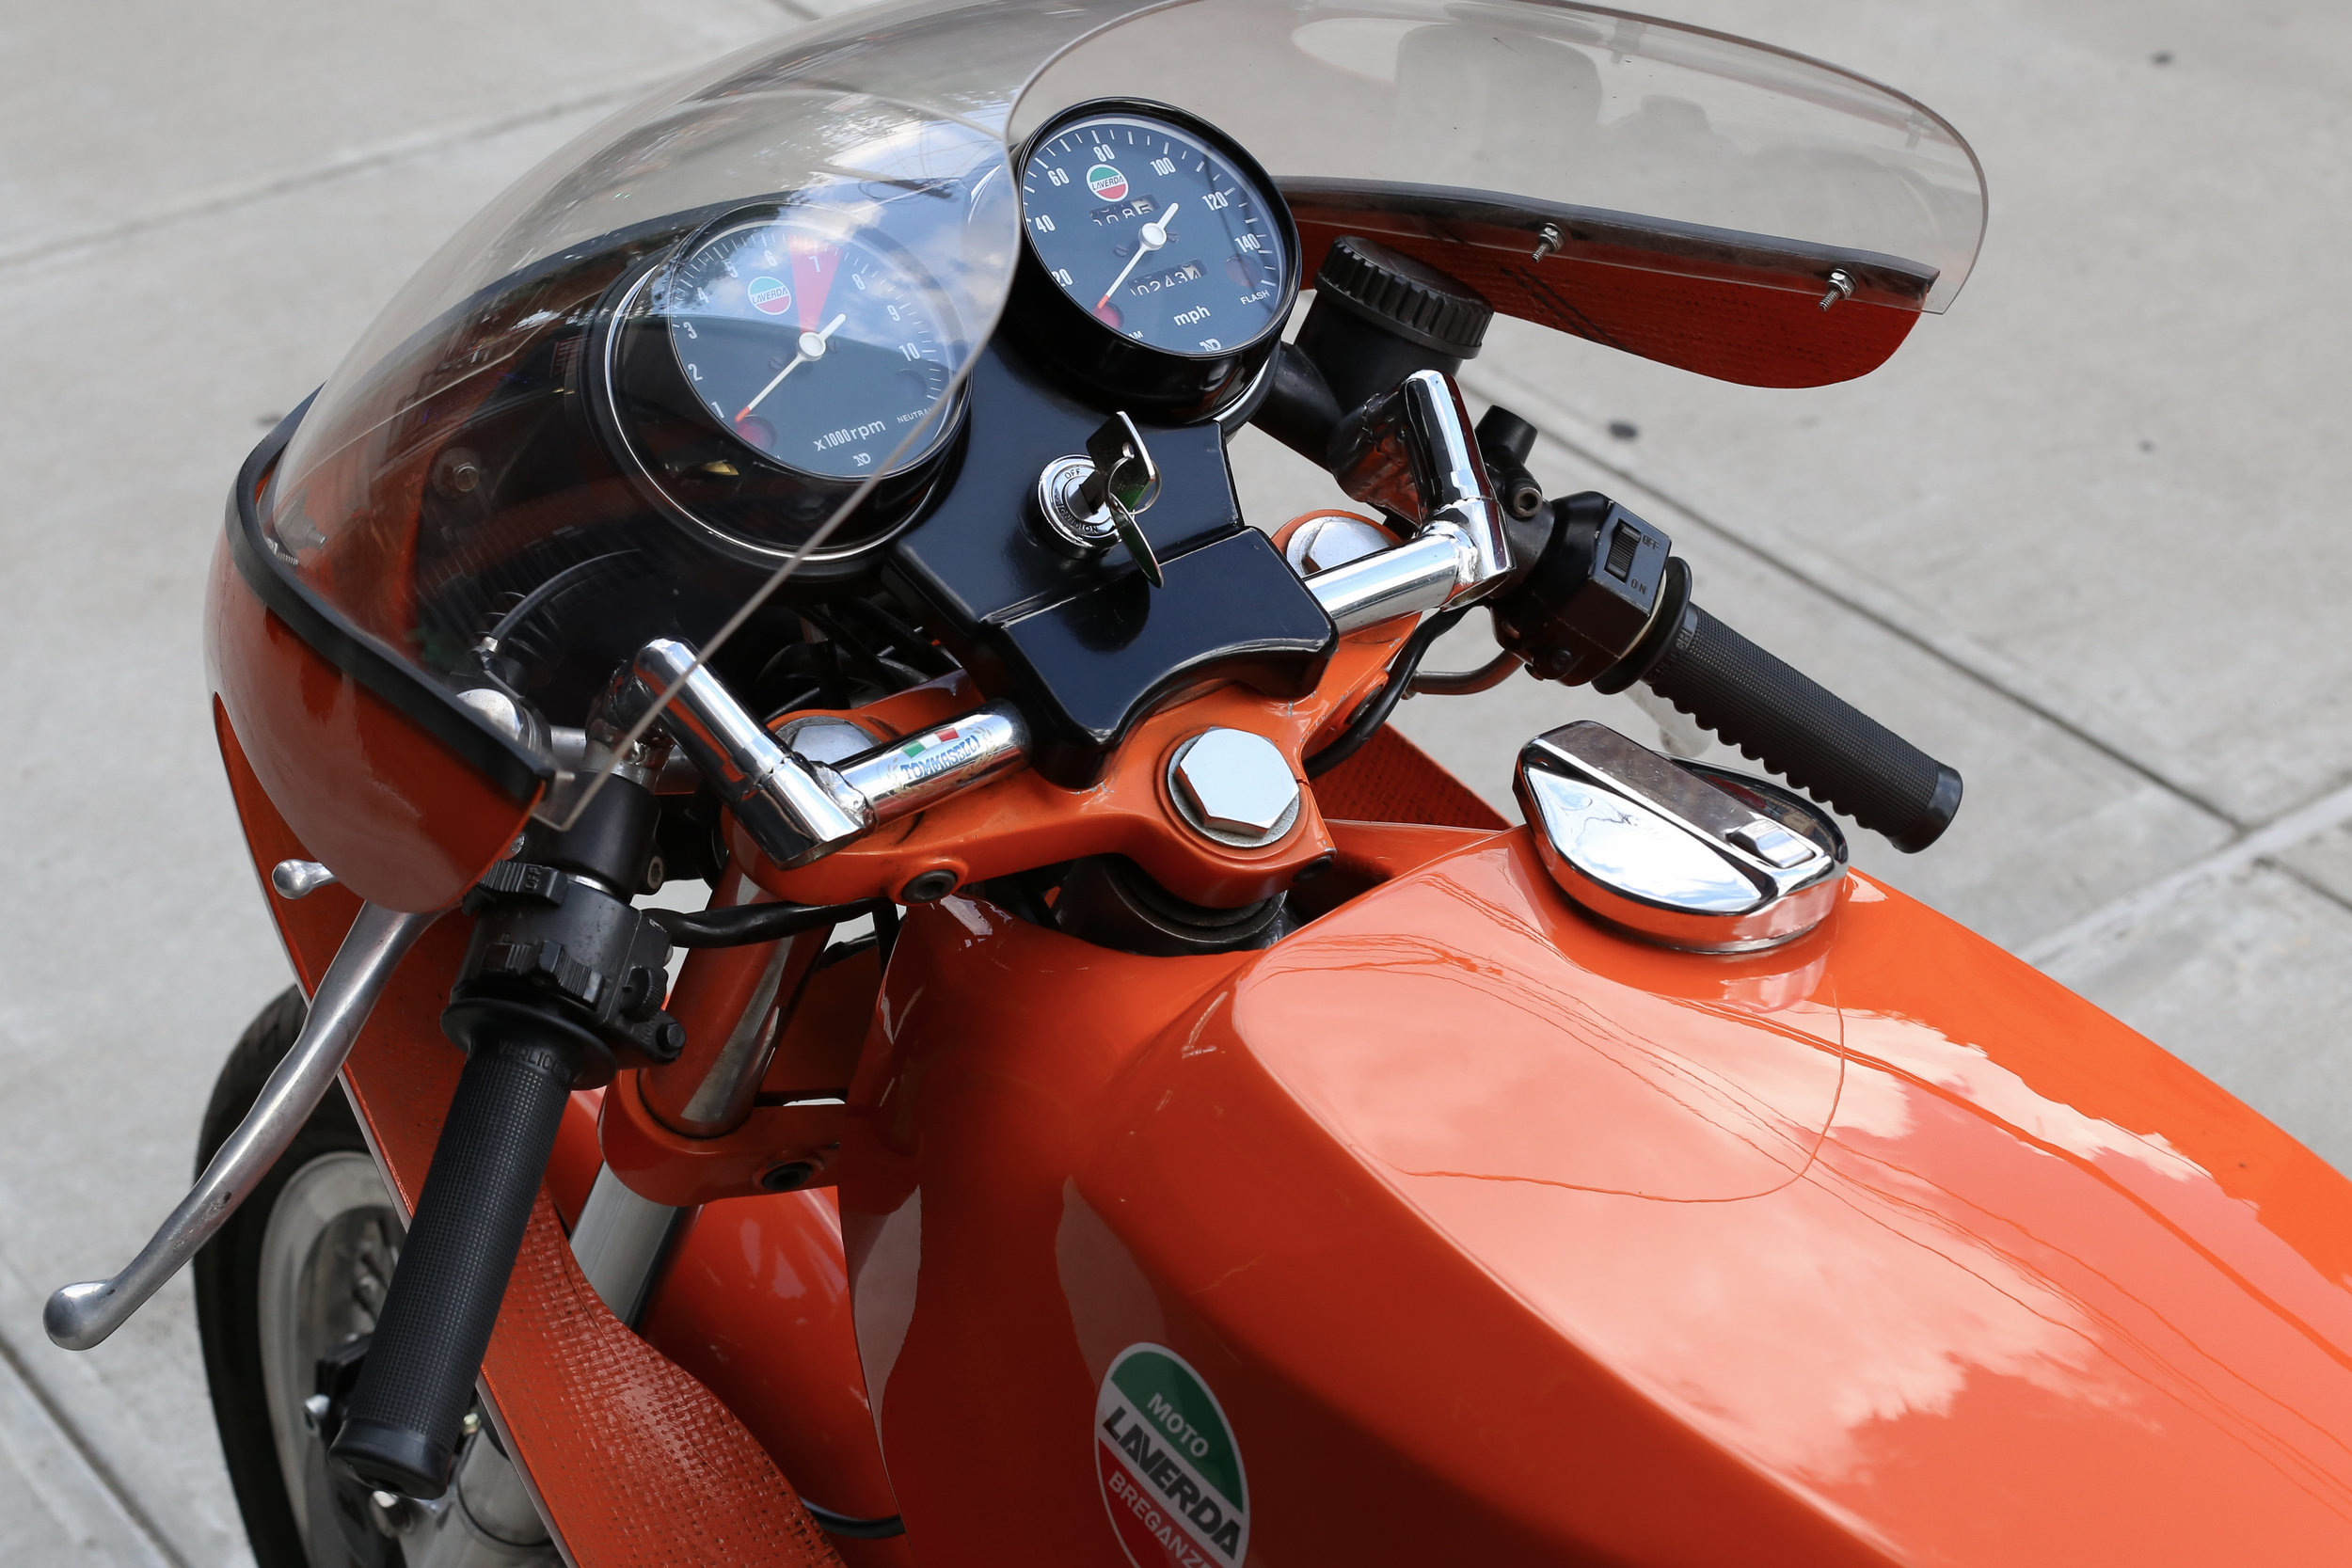 1974 Laverda SFC Gauges